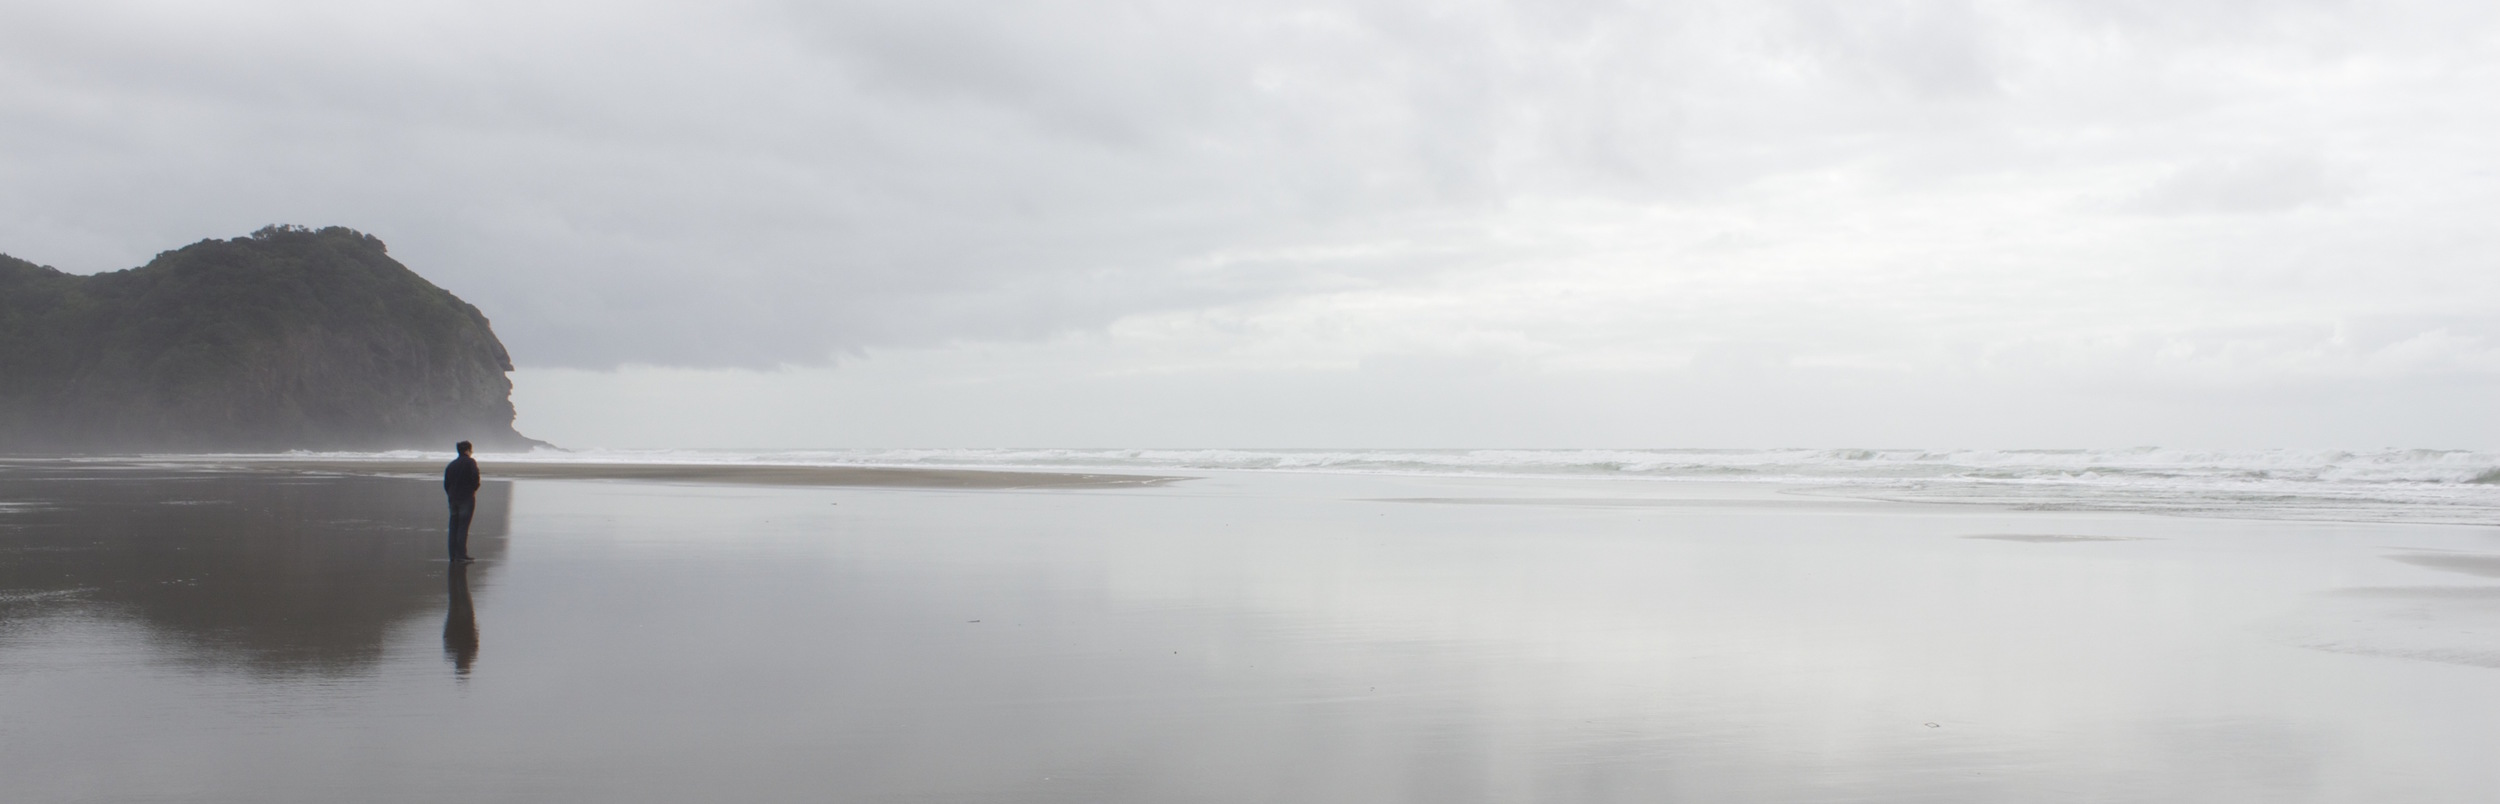 Piha Beach, New Zealand (2014)